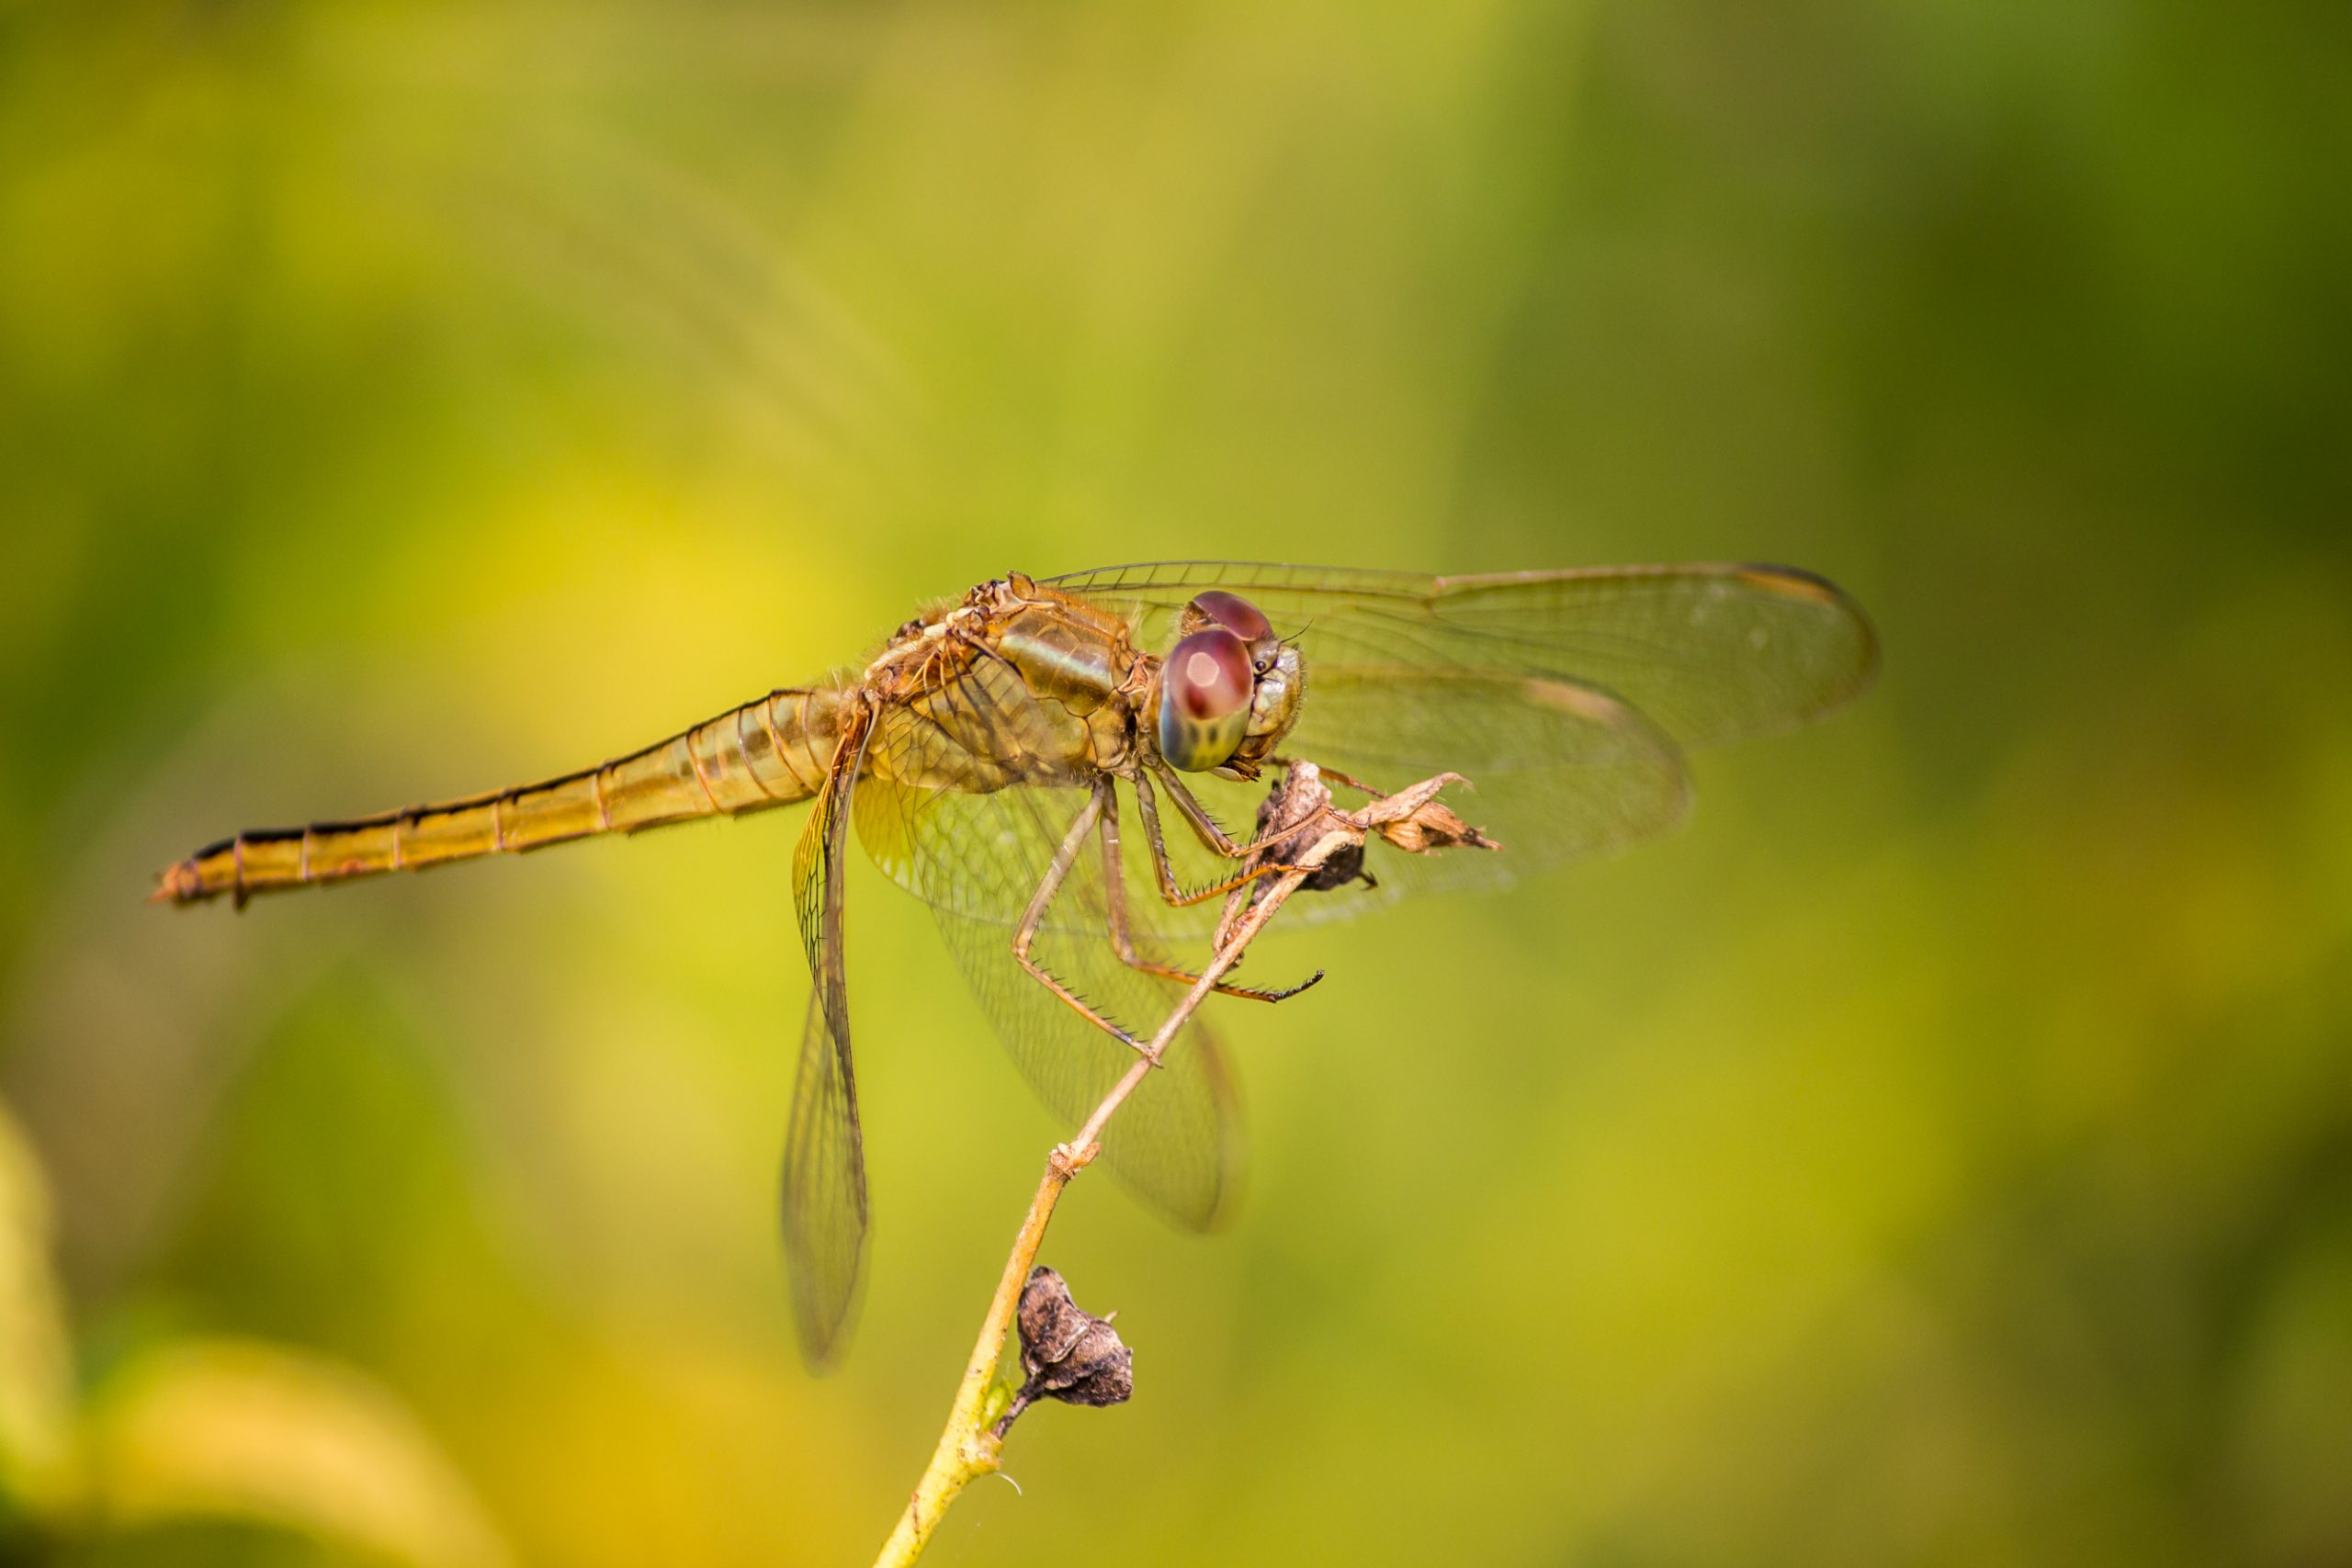 Dragonfly Sitting on the Twig